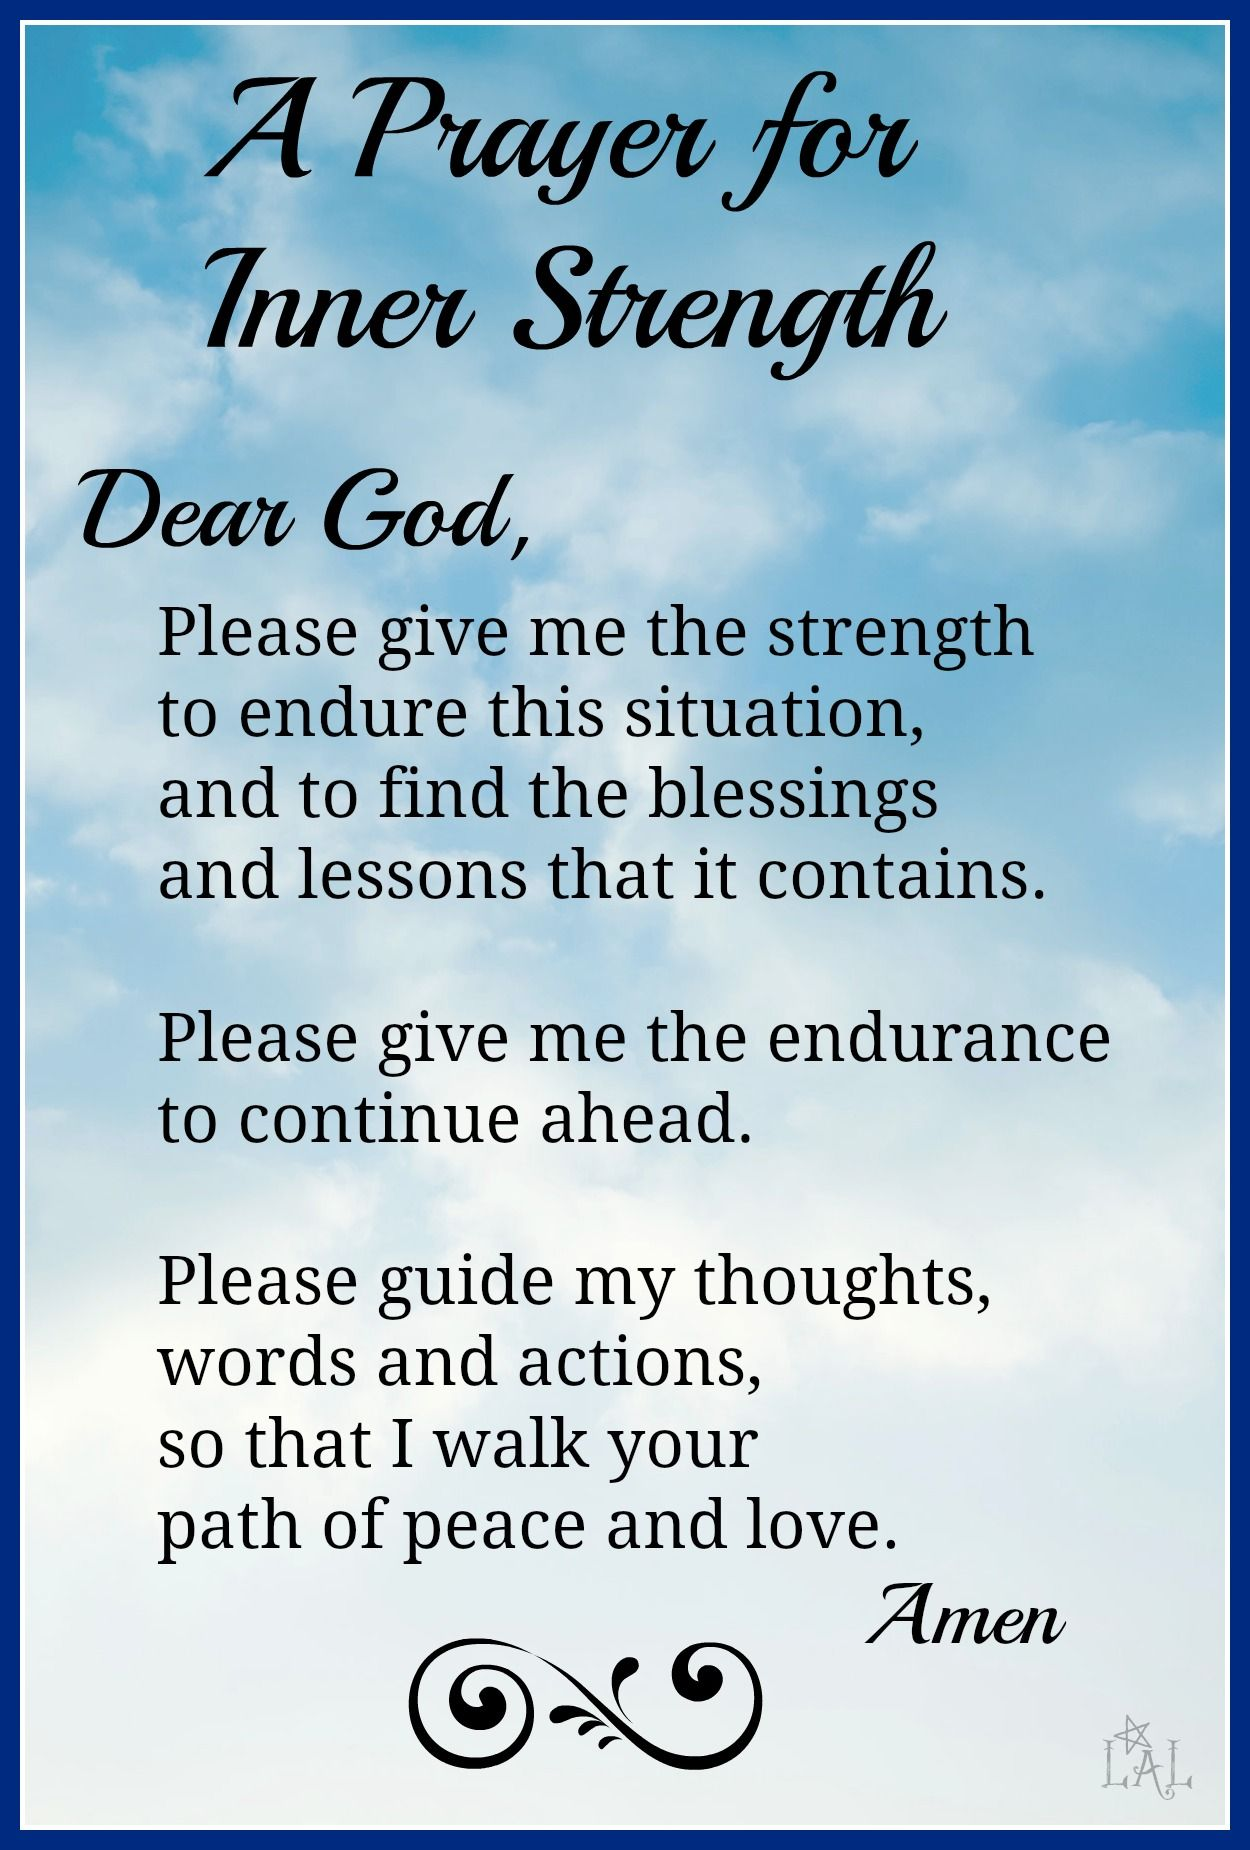 Prayer Quotes Classy Prayer For Inner Strength  Strength Quotes Strength And Blessings Design Ideas